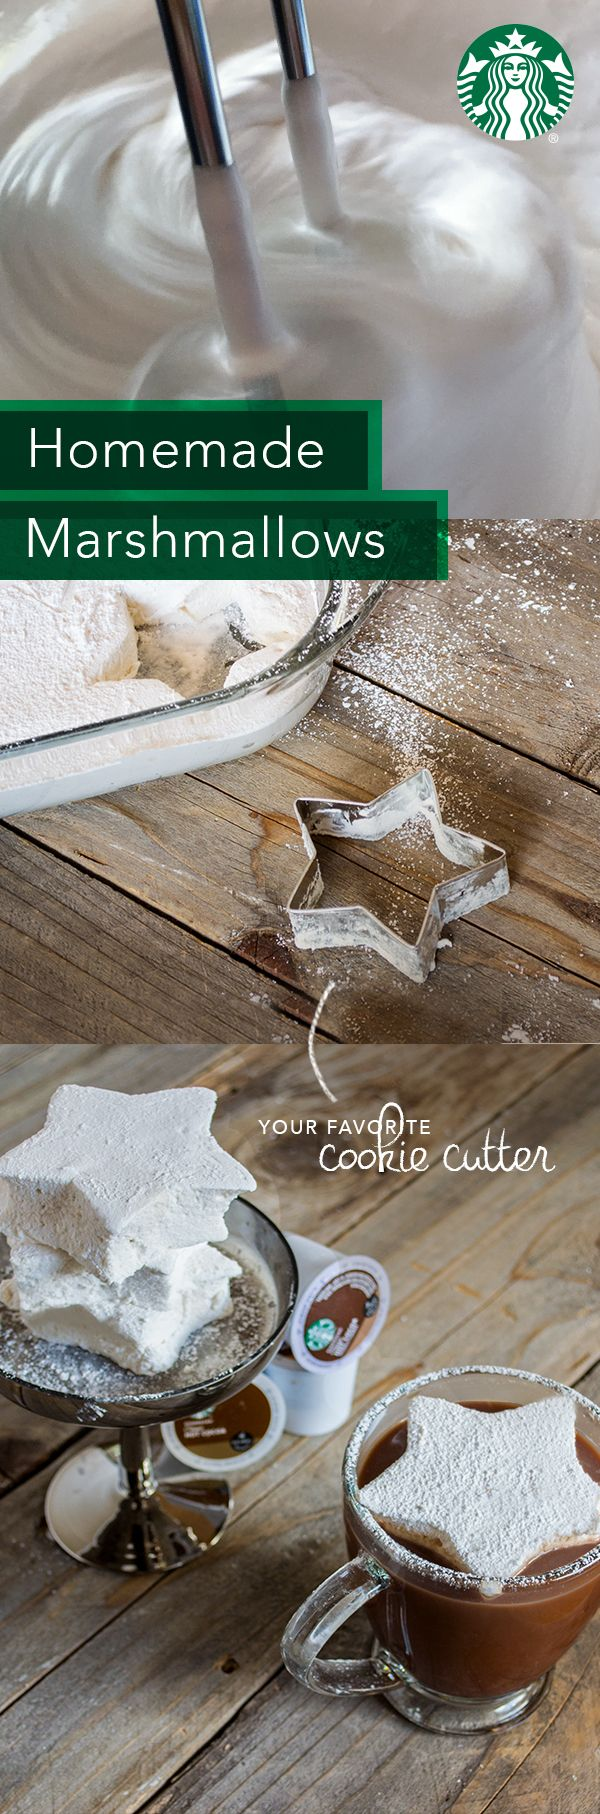 Soak 4 envelopes of gelatin in 1 cup of cold water. Set aside. In a saucepan, combine 4 cups sugar with 1 cup of chilled water. Stir over medium heat until sugar crystals dissolve, and add gelatin from packets. Bring to a boil & stir. Once it's boiling, remove from heat, pour into a bowl & let cool. Add ½ tsp salt & 3 tsp vanilla extract. Mix with an mixer until doubled in thickness. Pour into a greased glass baking pan & let set. Cut into shapes using cookie cutters & dust with powdered…